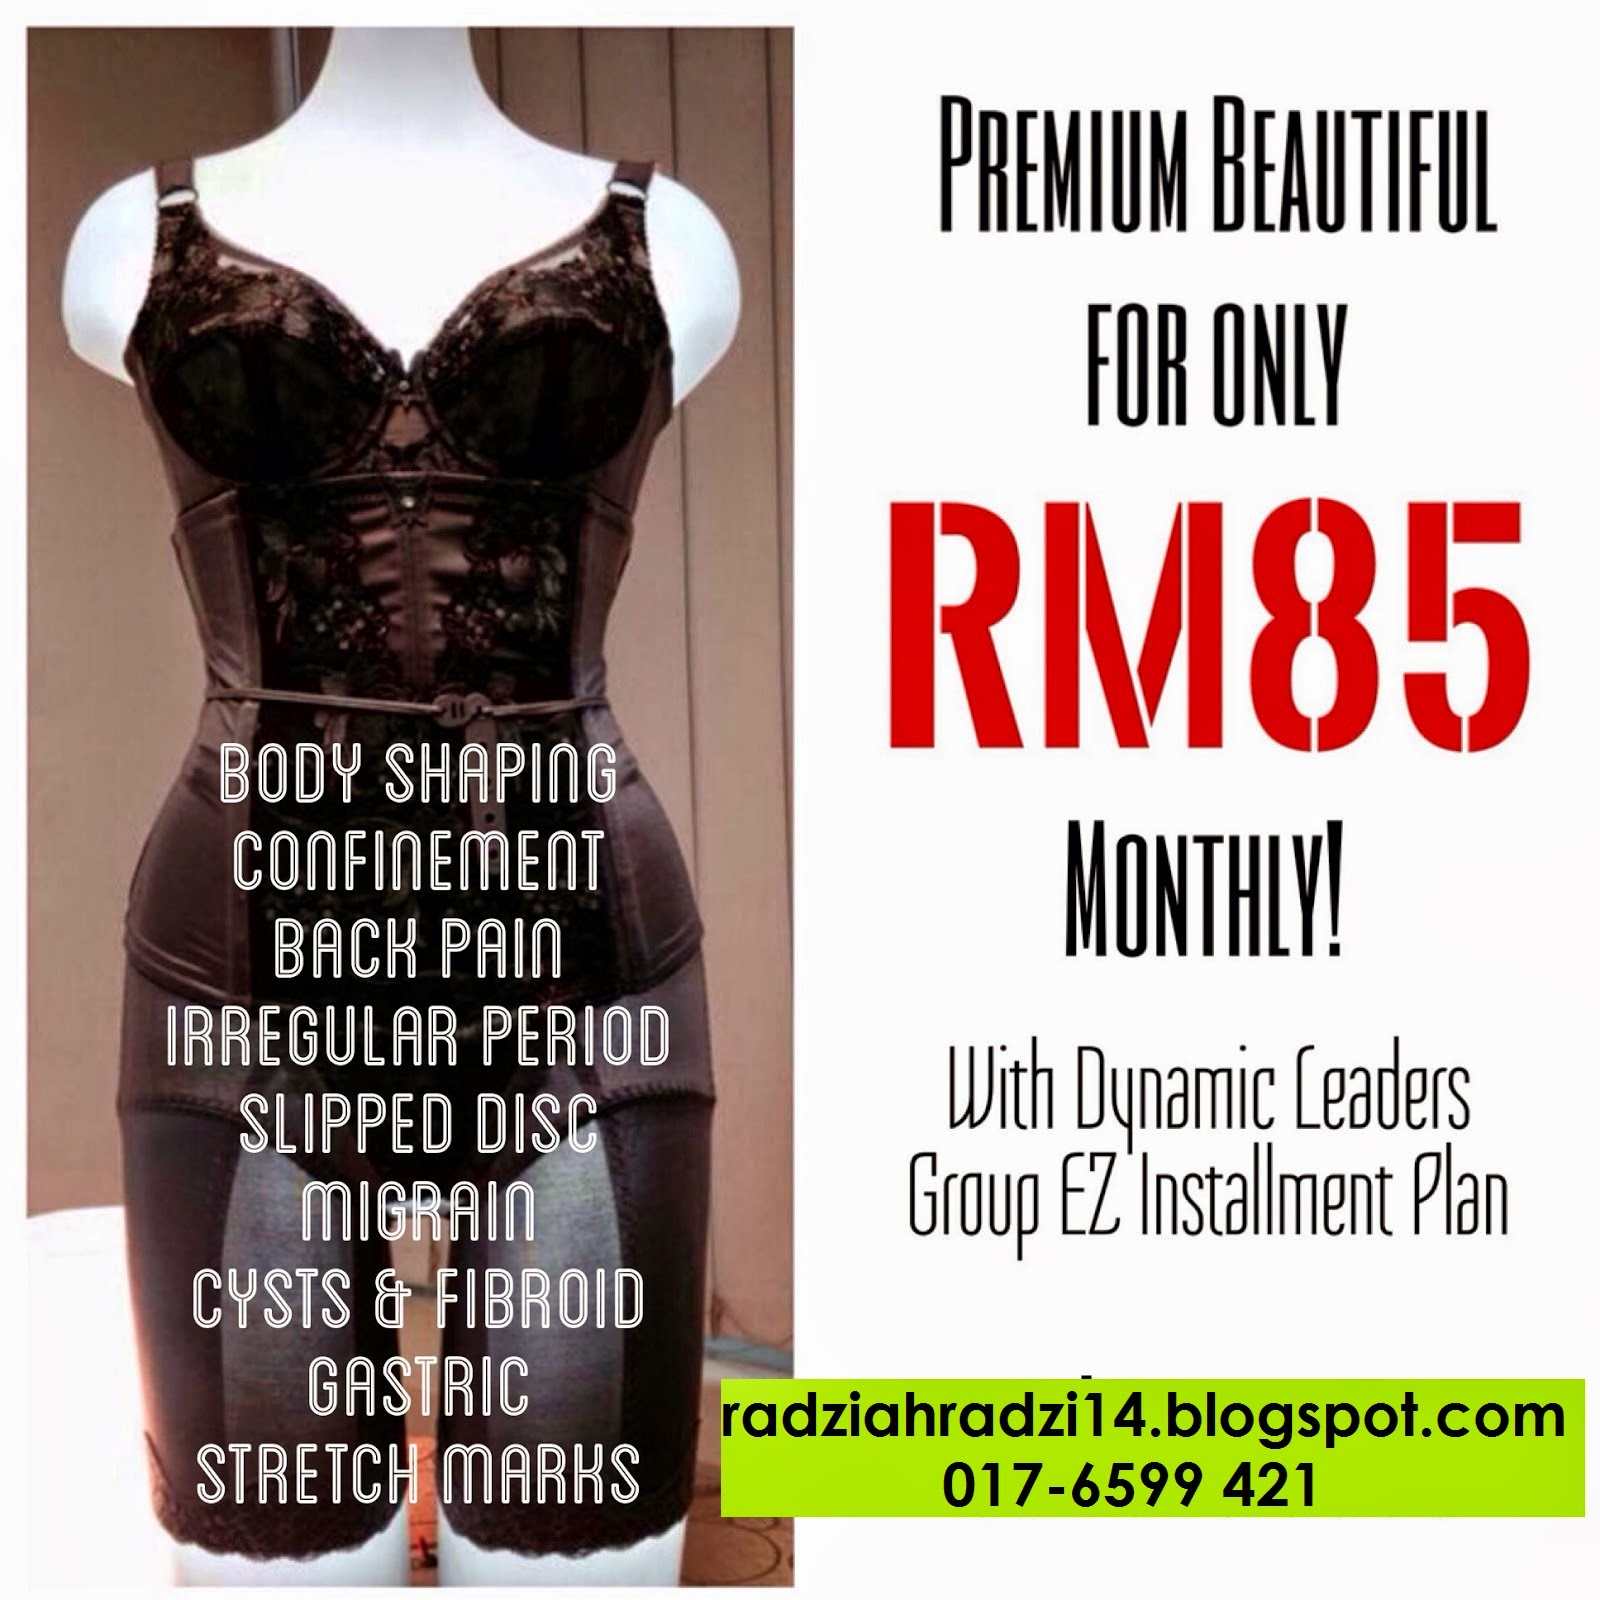 benefits, installment plan, premium beautiful, premium beautiful corset, premium beautiful elegance, promosi, sakit belakang, slipped disc,